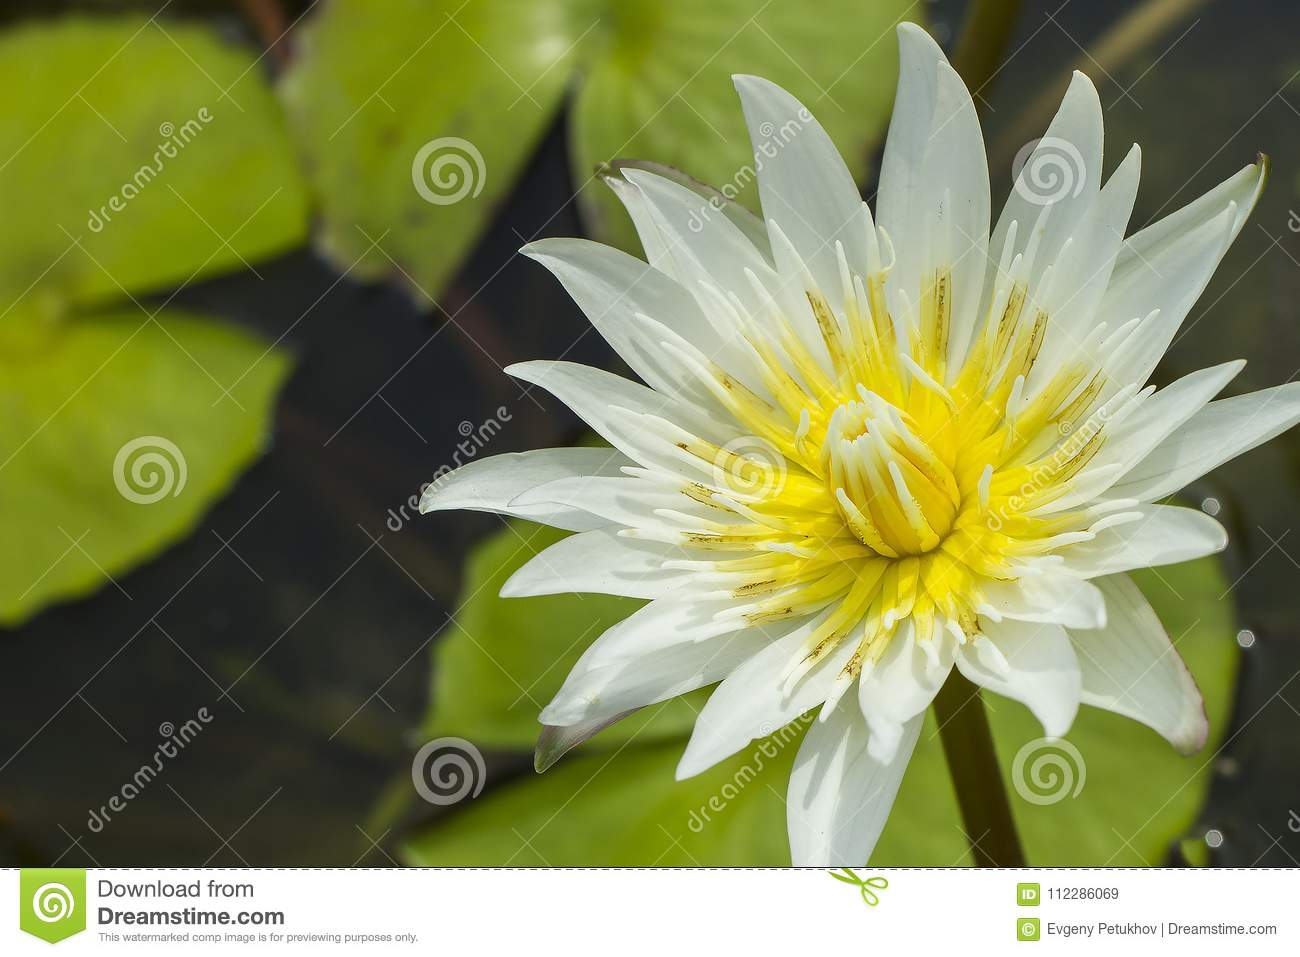 Elegant White Lily Flower Lotus In Water The Lotus Flower Water